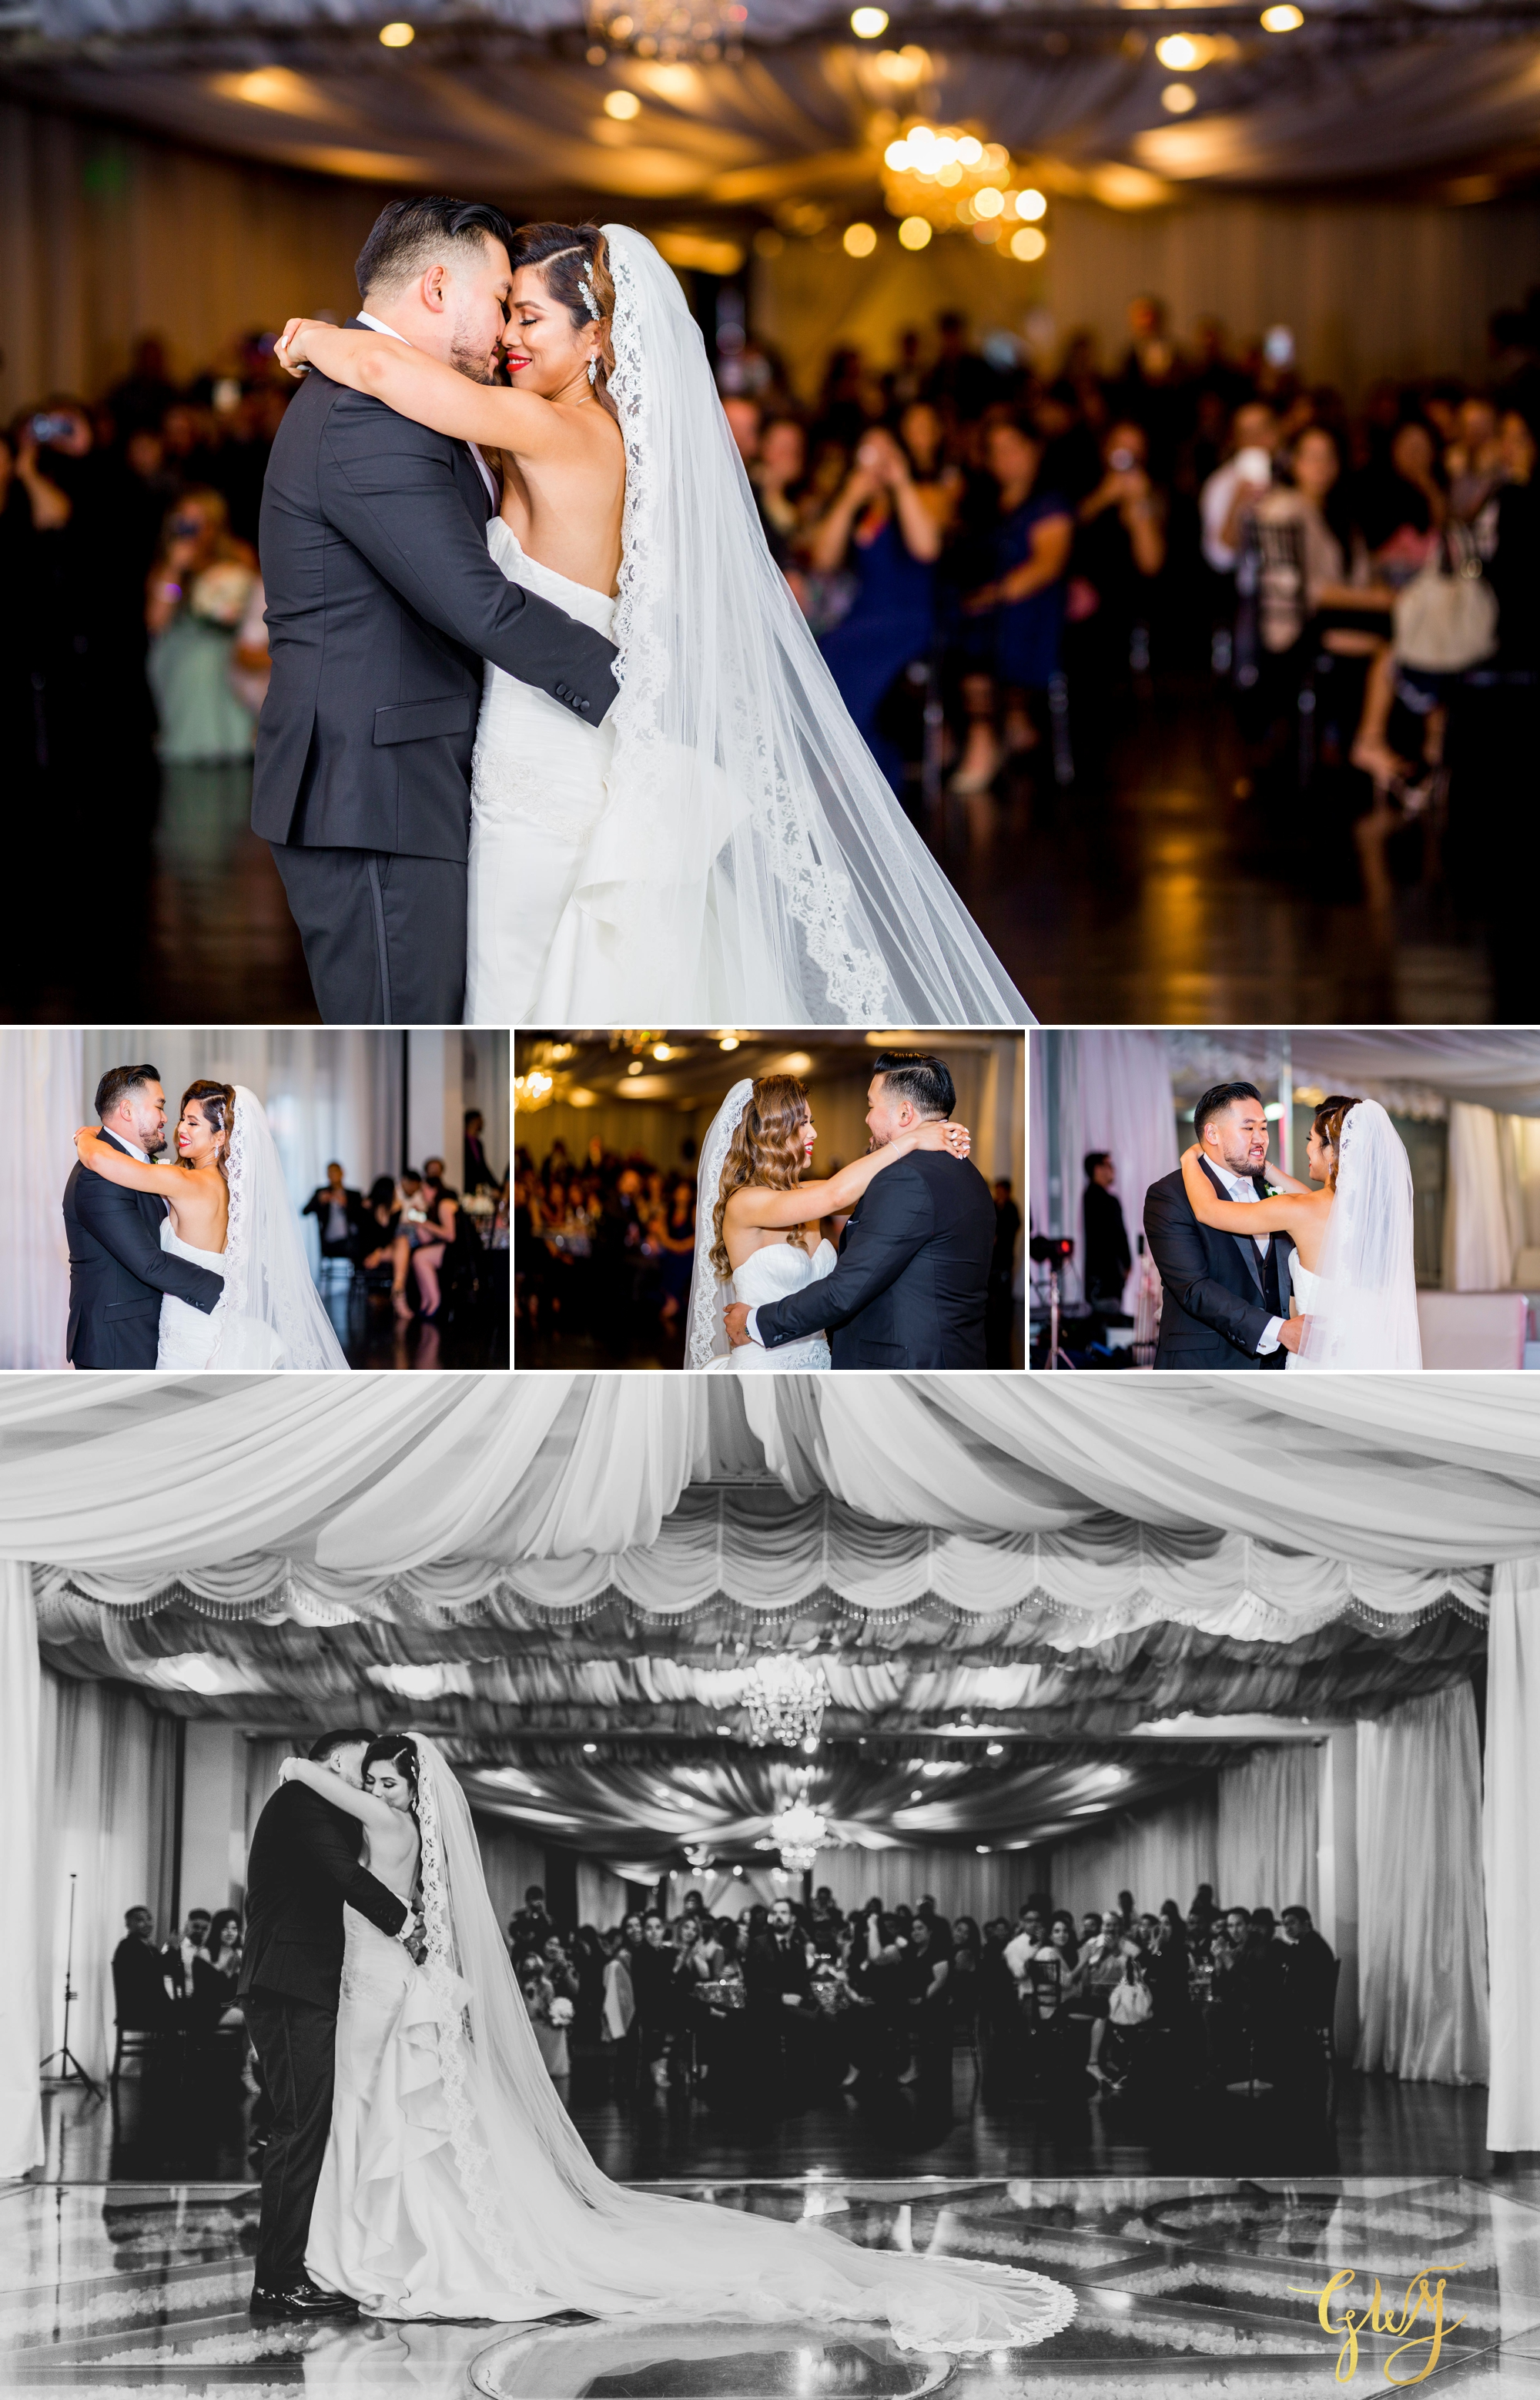 Andy + Caselyn's White House Event Center Orange County Spring Wedding by Glass Woods Media 42.jpg